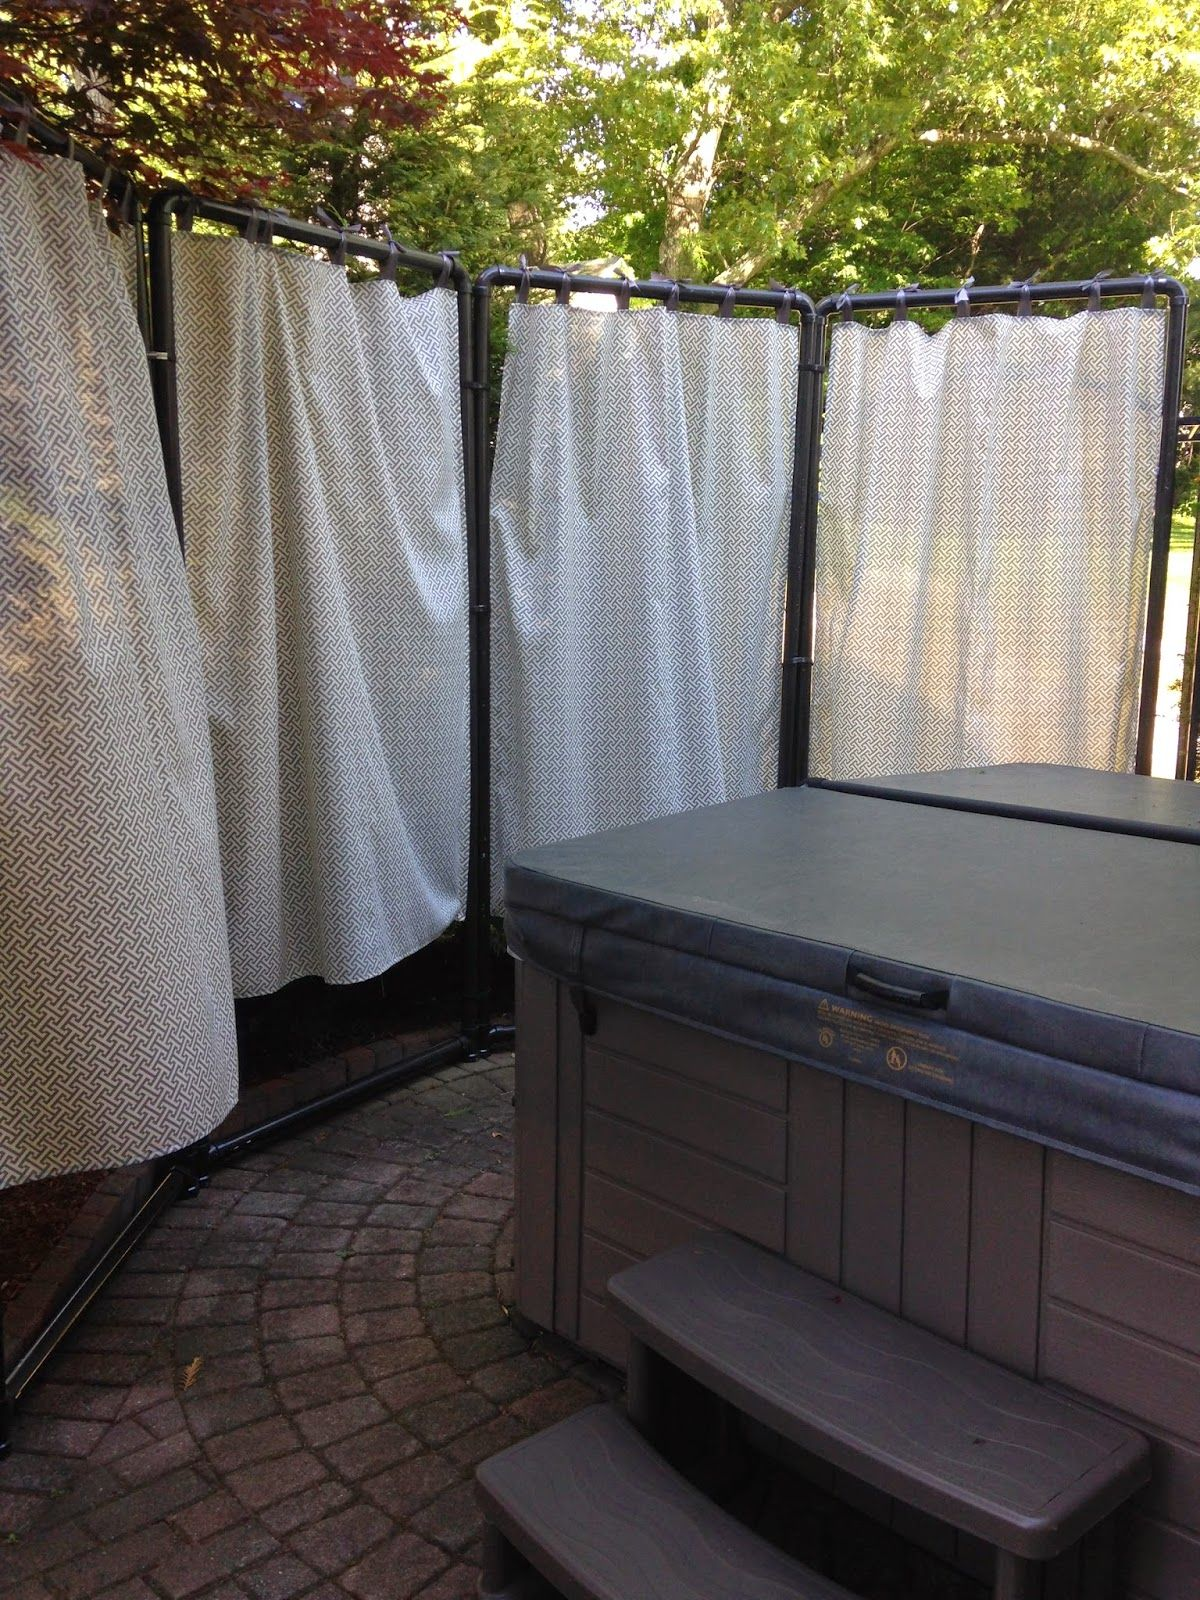 Diy Patio Privacy Screen Ideas: Bless Your Heart: DIY Privacy Screen